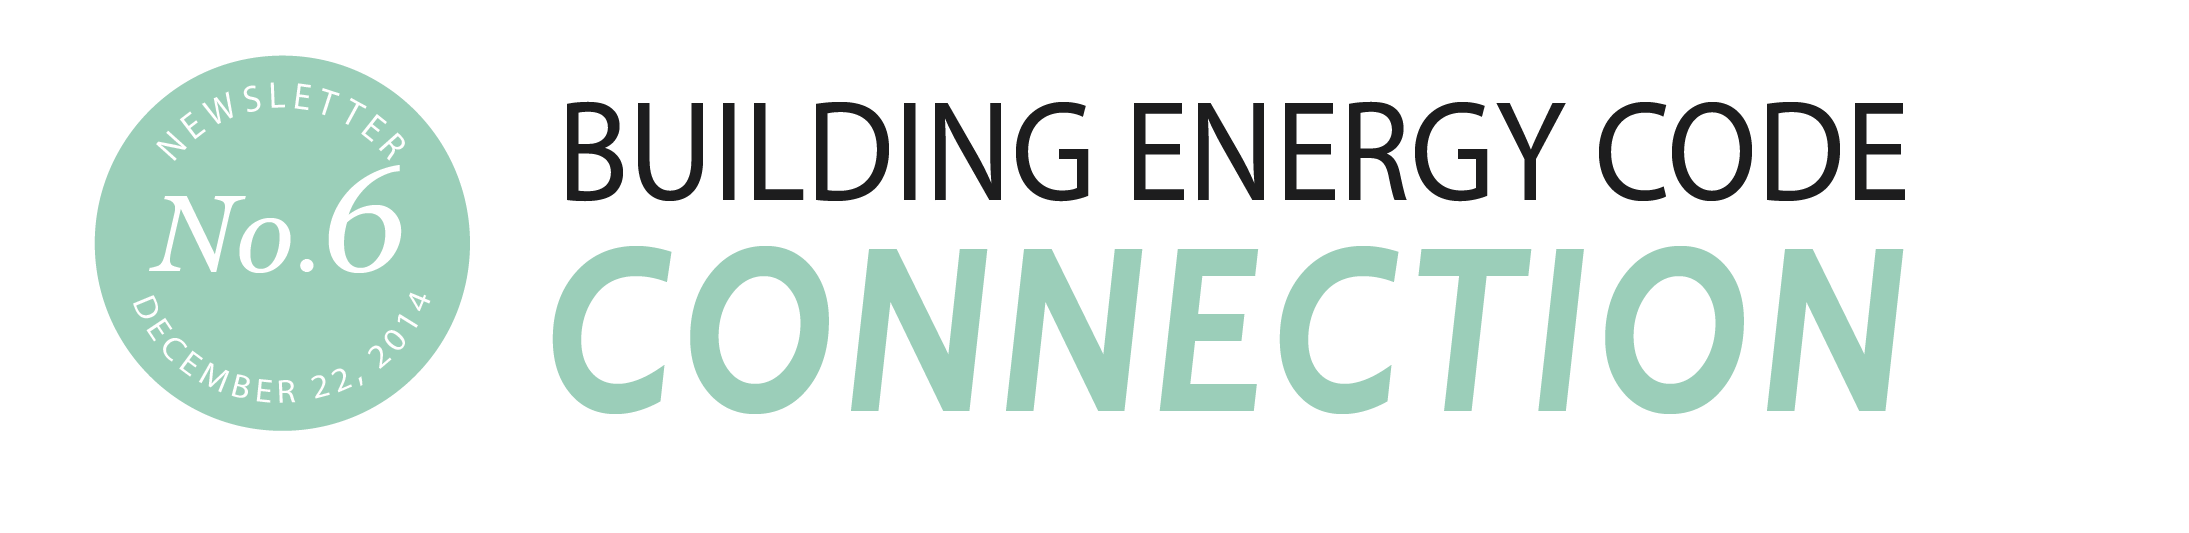 Building Energy Code Connection